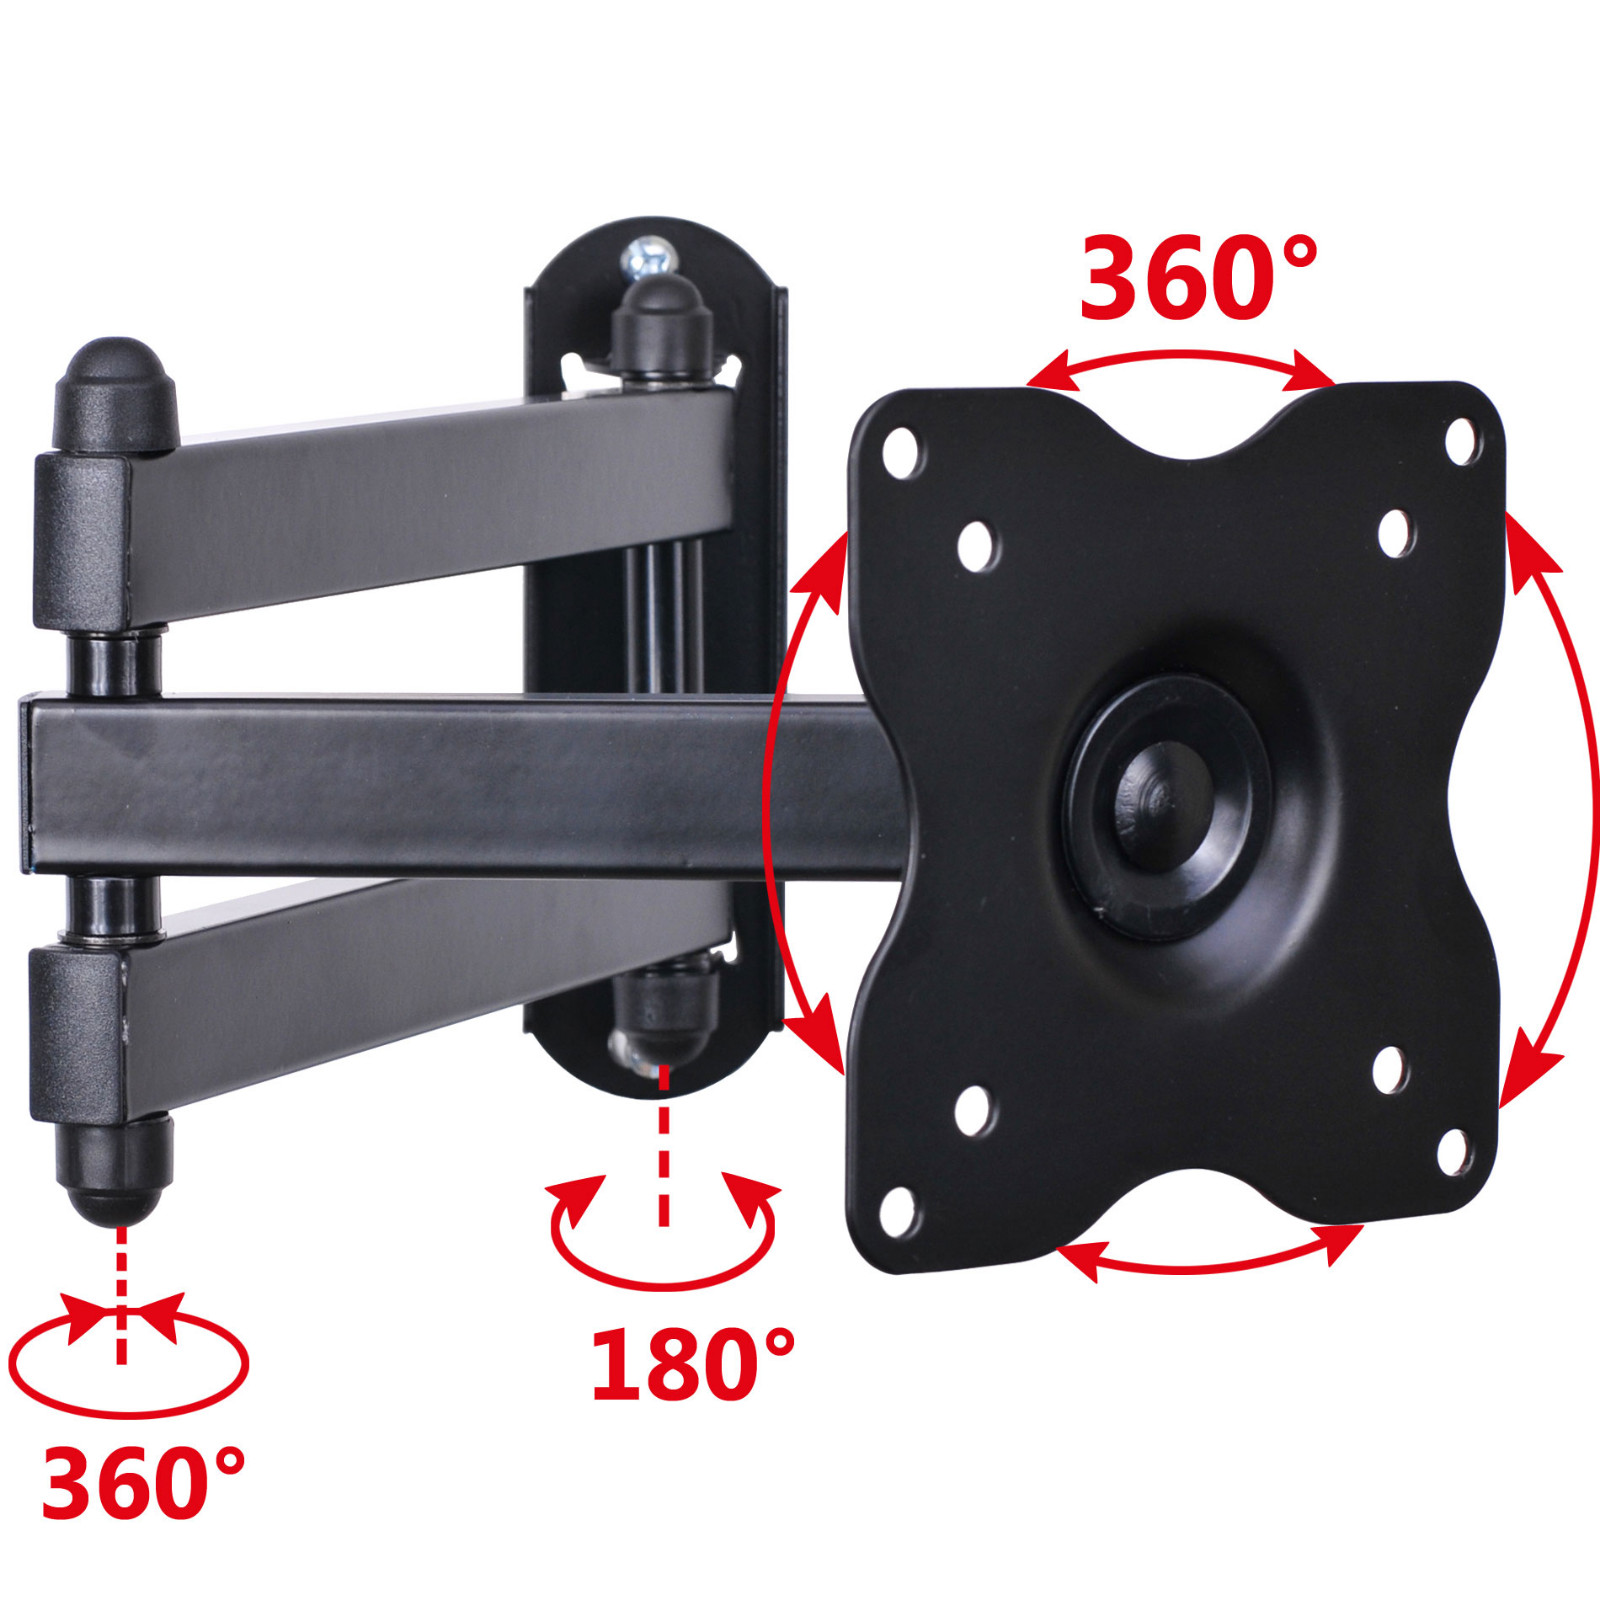 "VideoSecu Articulating Full Motion Tilt Swivel TV Wall Mount for Samsung 19 22 24 26 28 29"" LCD LED Computer Monitor C1B"